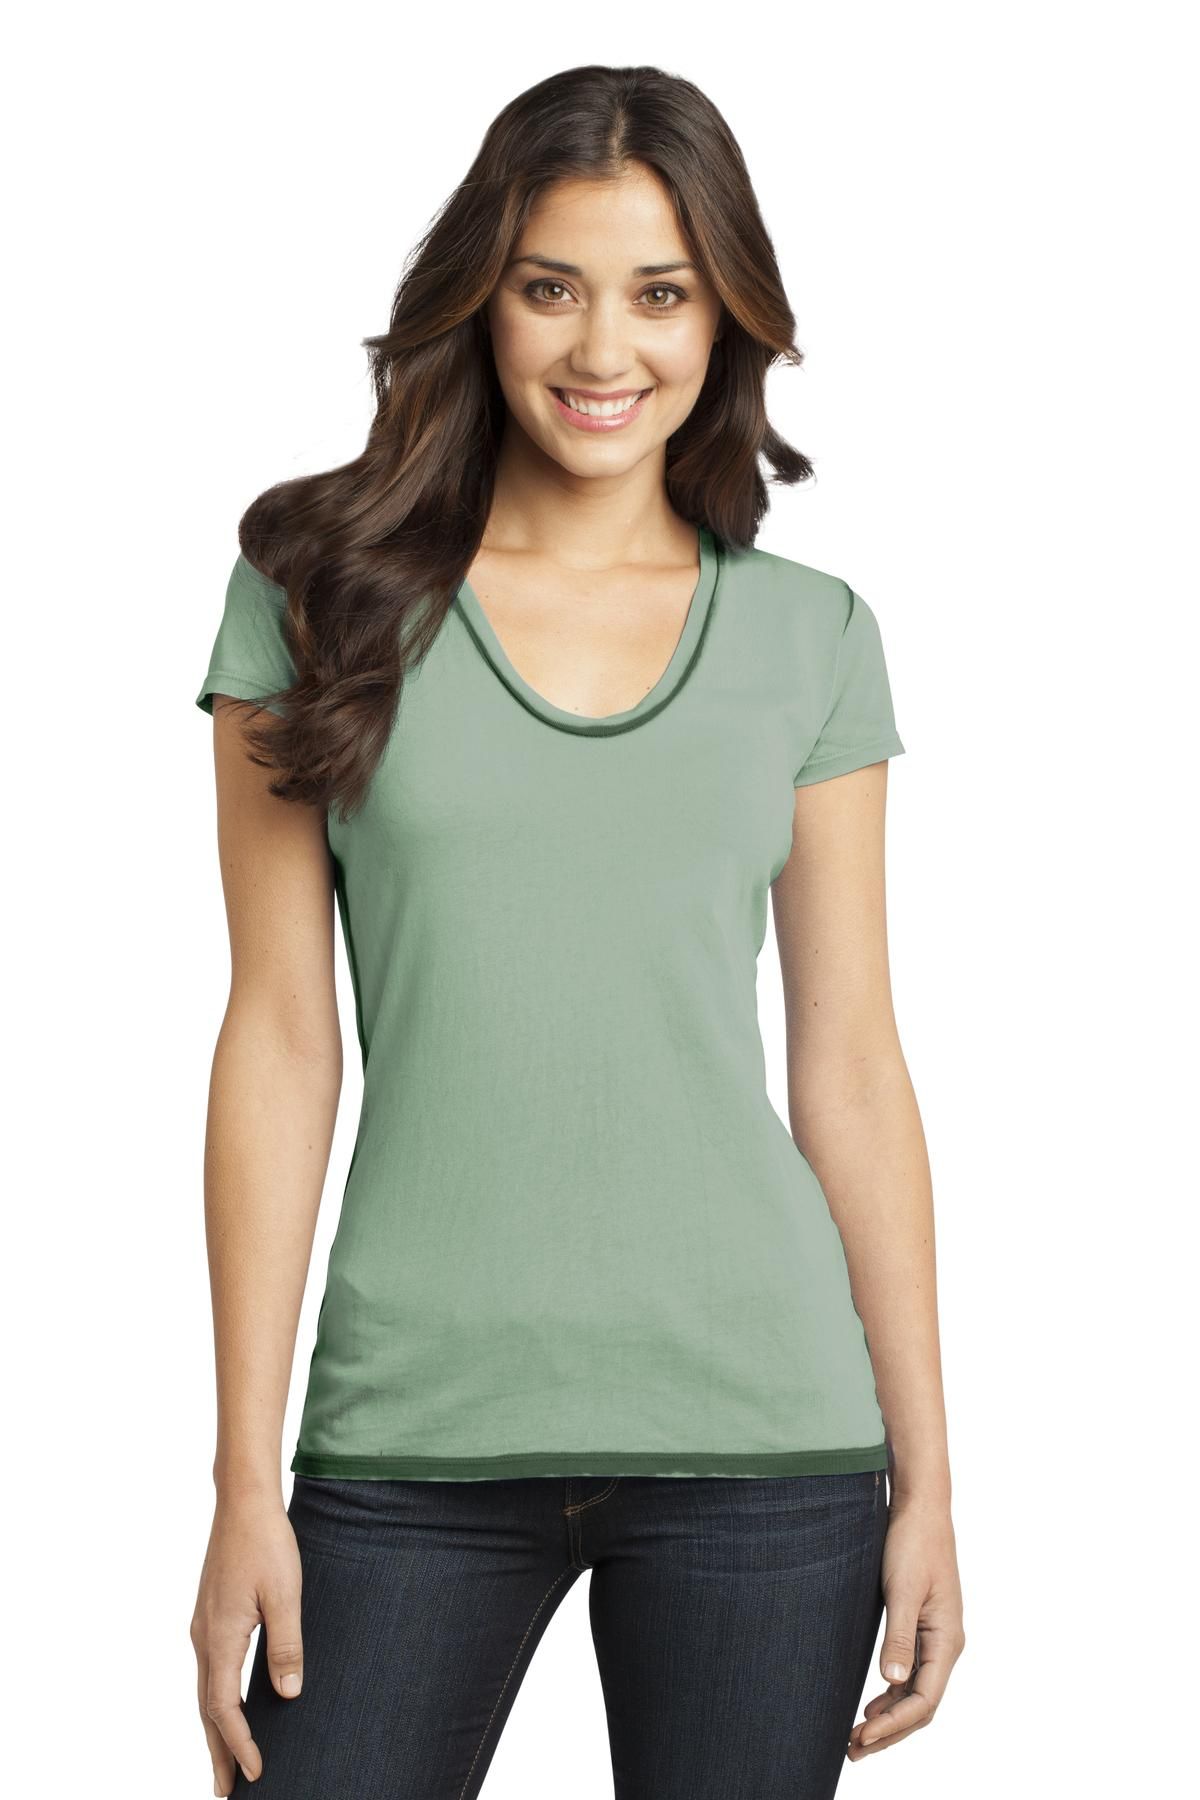 CLOSEOUT District - Juniors Faded Rounded Deep V-Neck Tee. DT2202